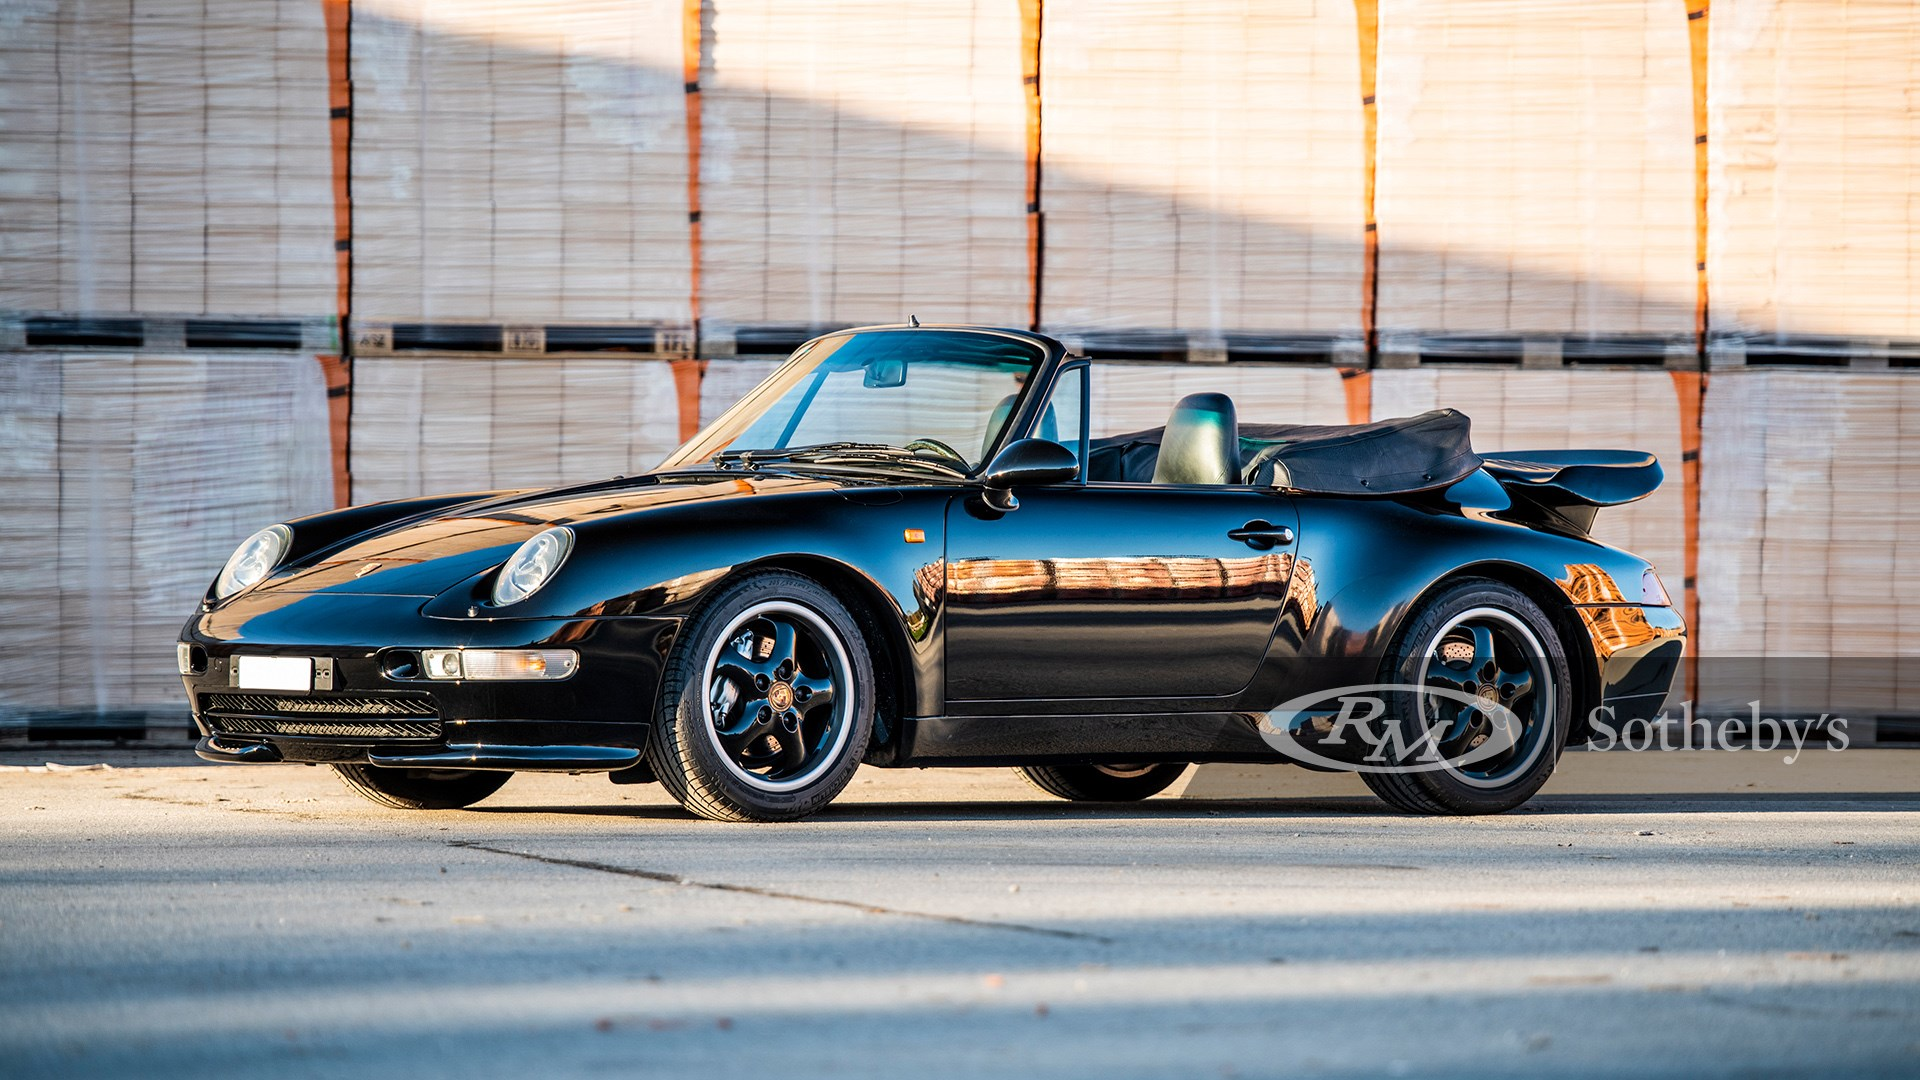 1995 Porsche 911 Turbo Cabriolet available at RM Sotheby's Online Only Open Roads February Auction 2021